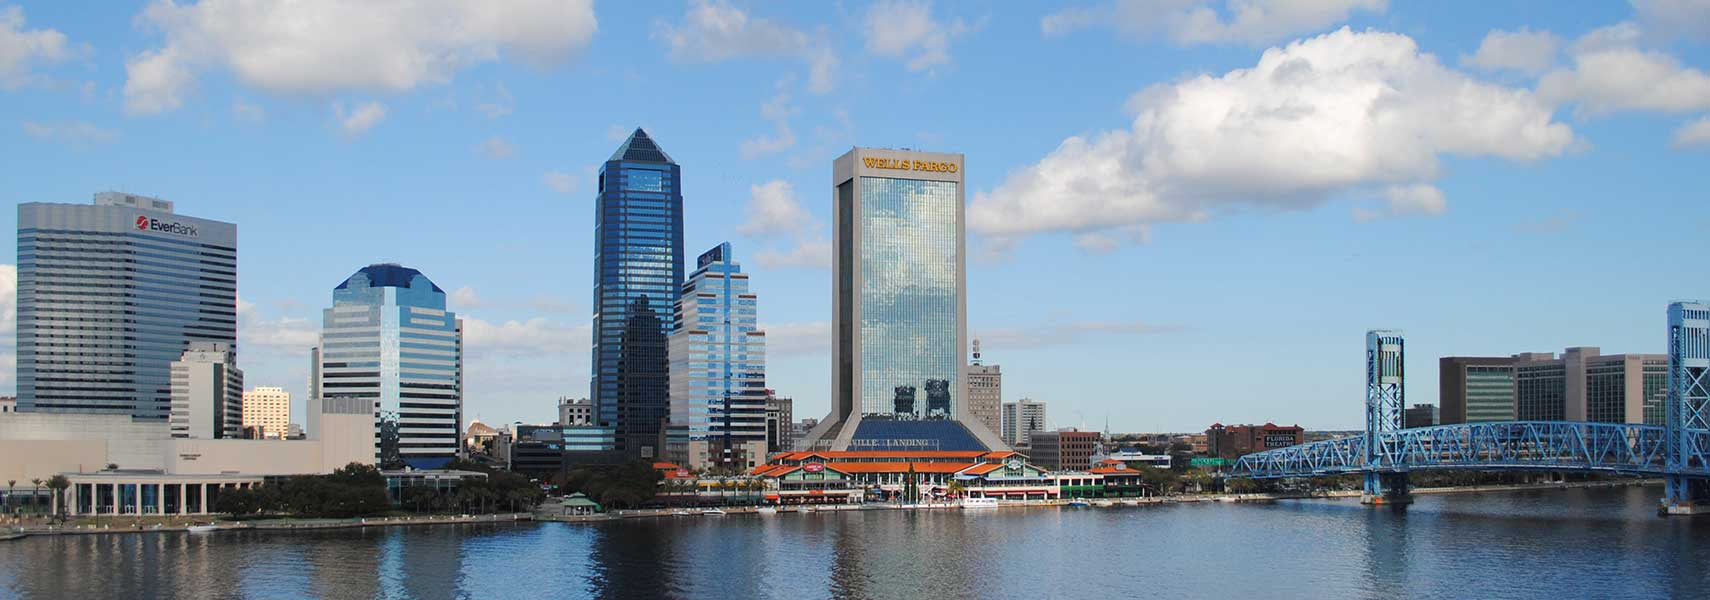 Skyline Jacksonville, Florida with EverBank Center, Jacksonville Landing, SunTrust Tower, Bank of America Tower, Wells Fargo Center and Main Street Bridge